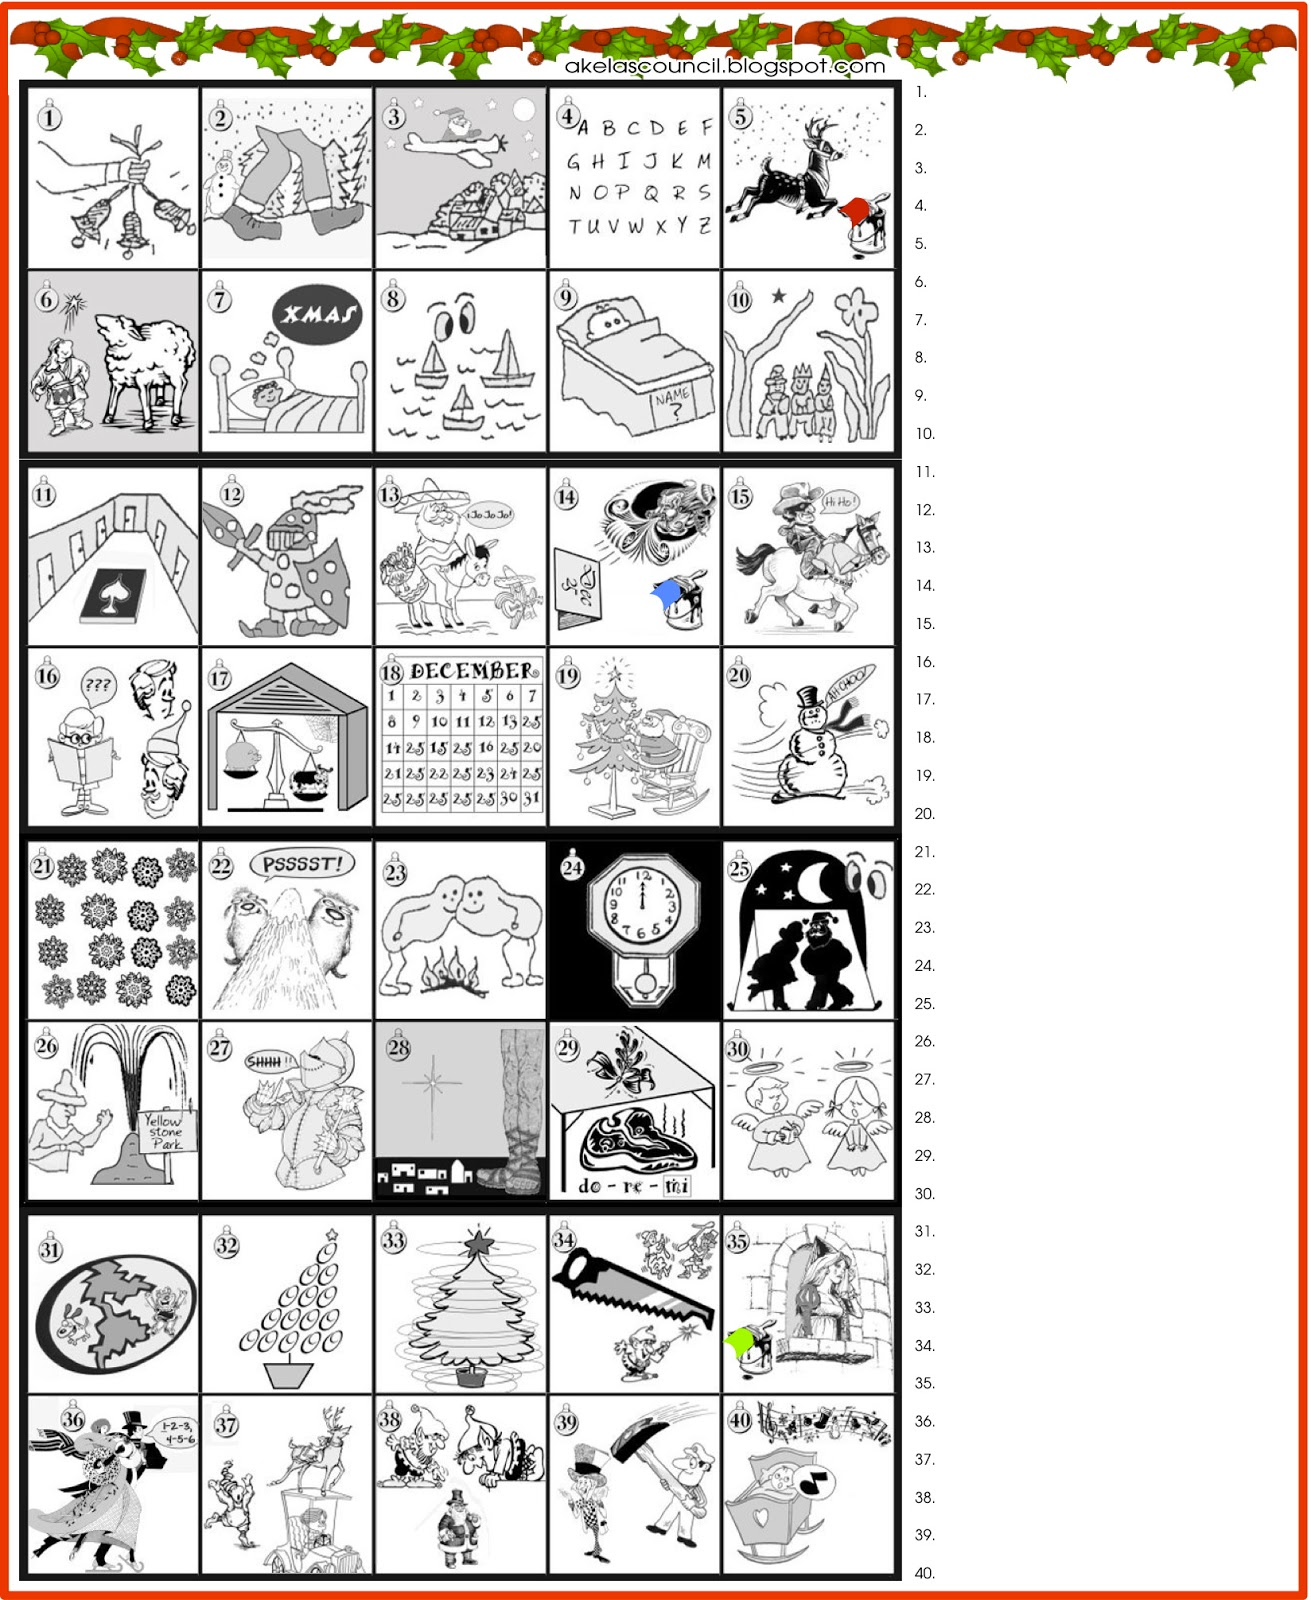 We have more word puzzles, and other kinds of printable puzzles on our